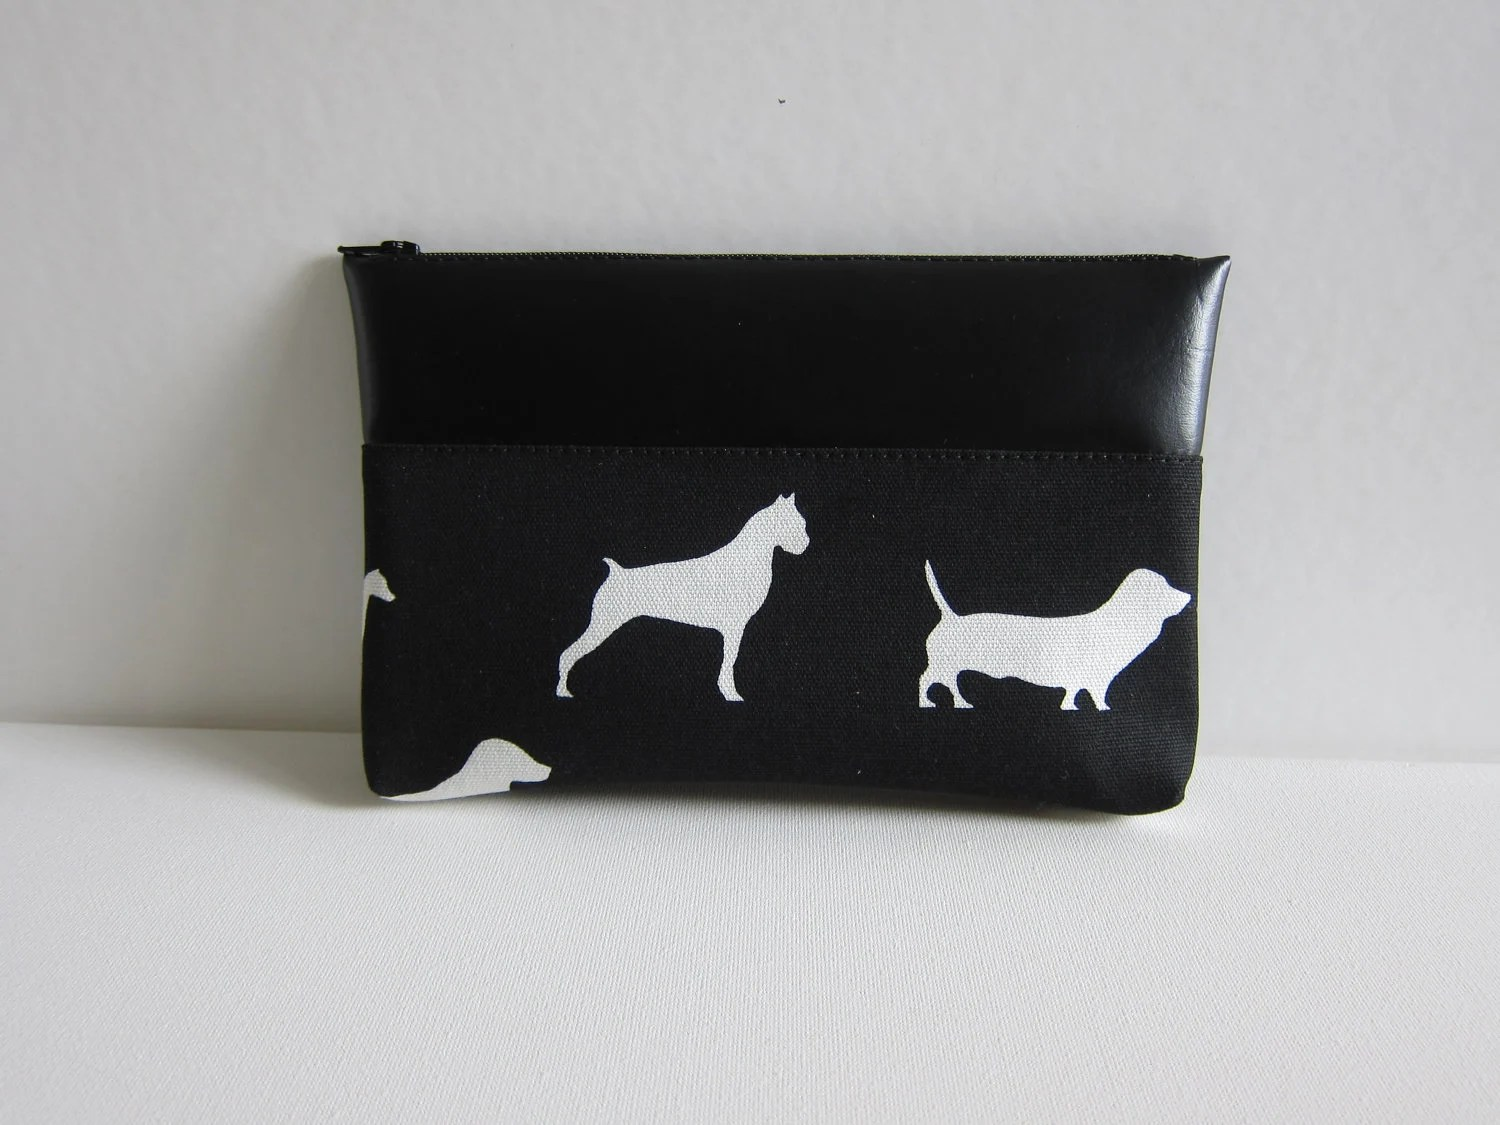 SALE - Clutch in A Walk in the Park Print, Black - Ready to Ship - BewbewDesigns